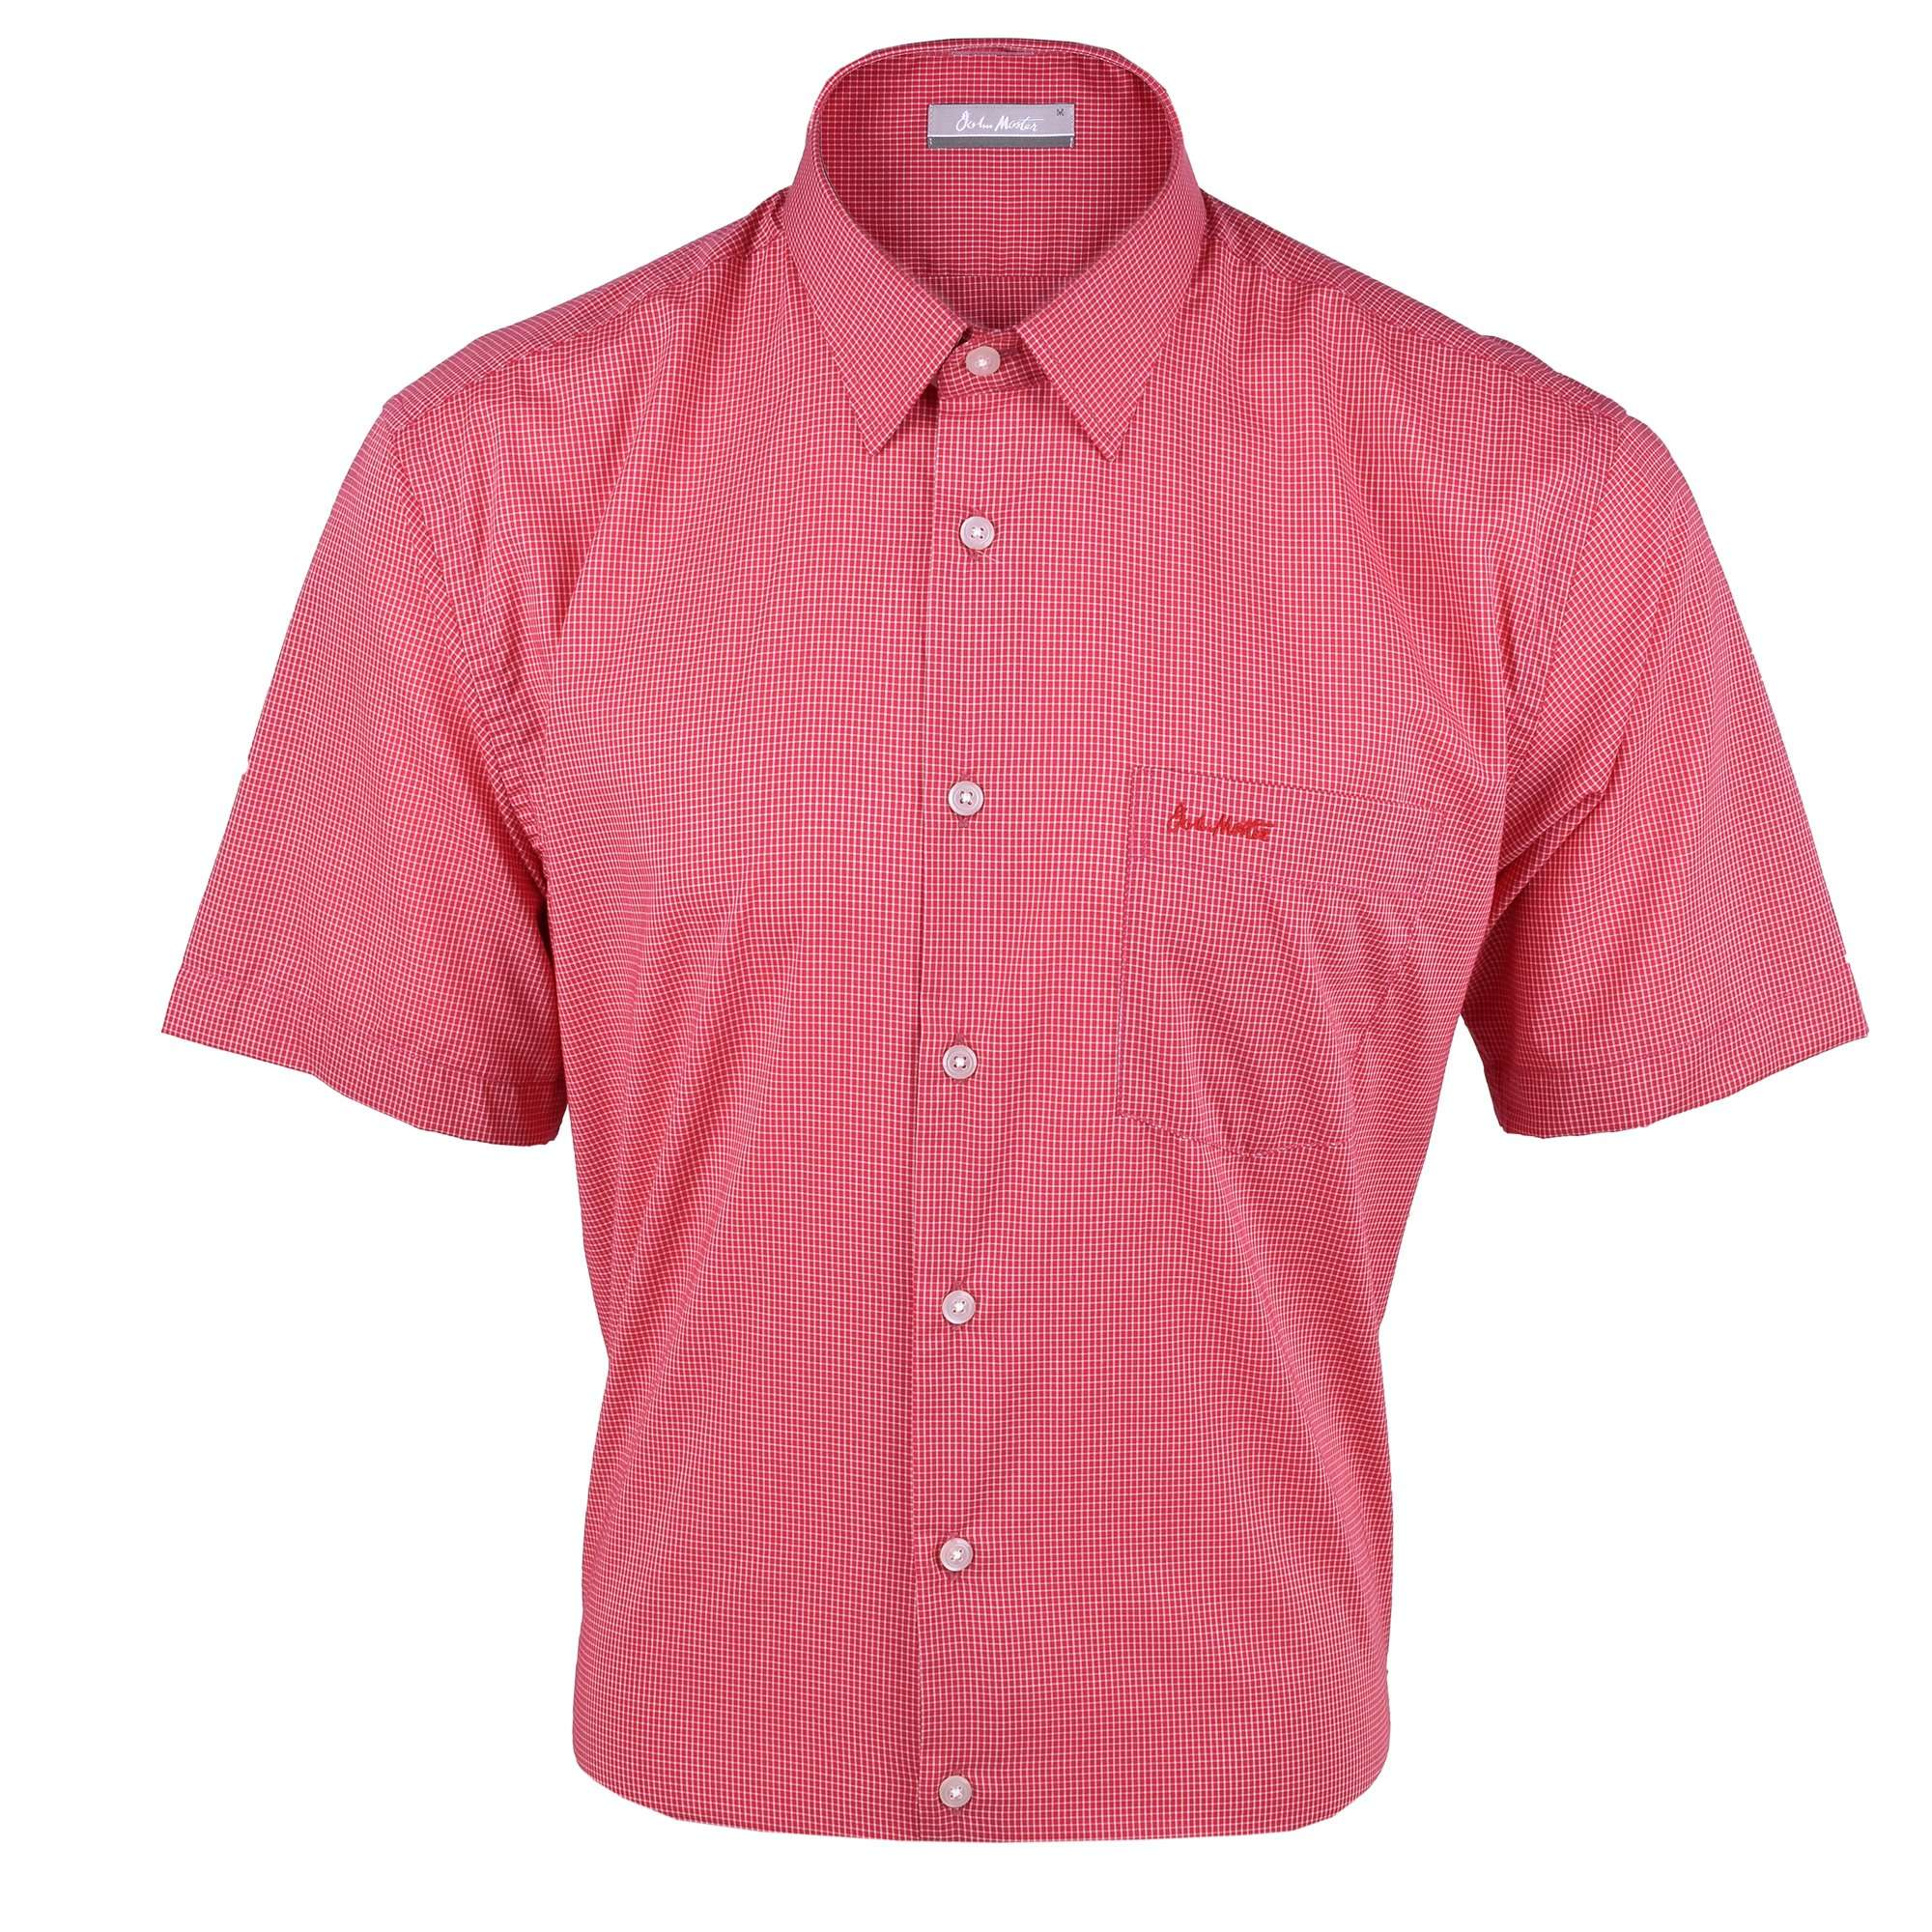 John Master Men Casual Regular Fit Shirt Red 7147034-R5 : Buy John Master online at CMG.MY